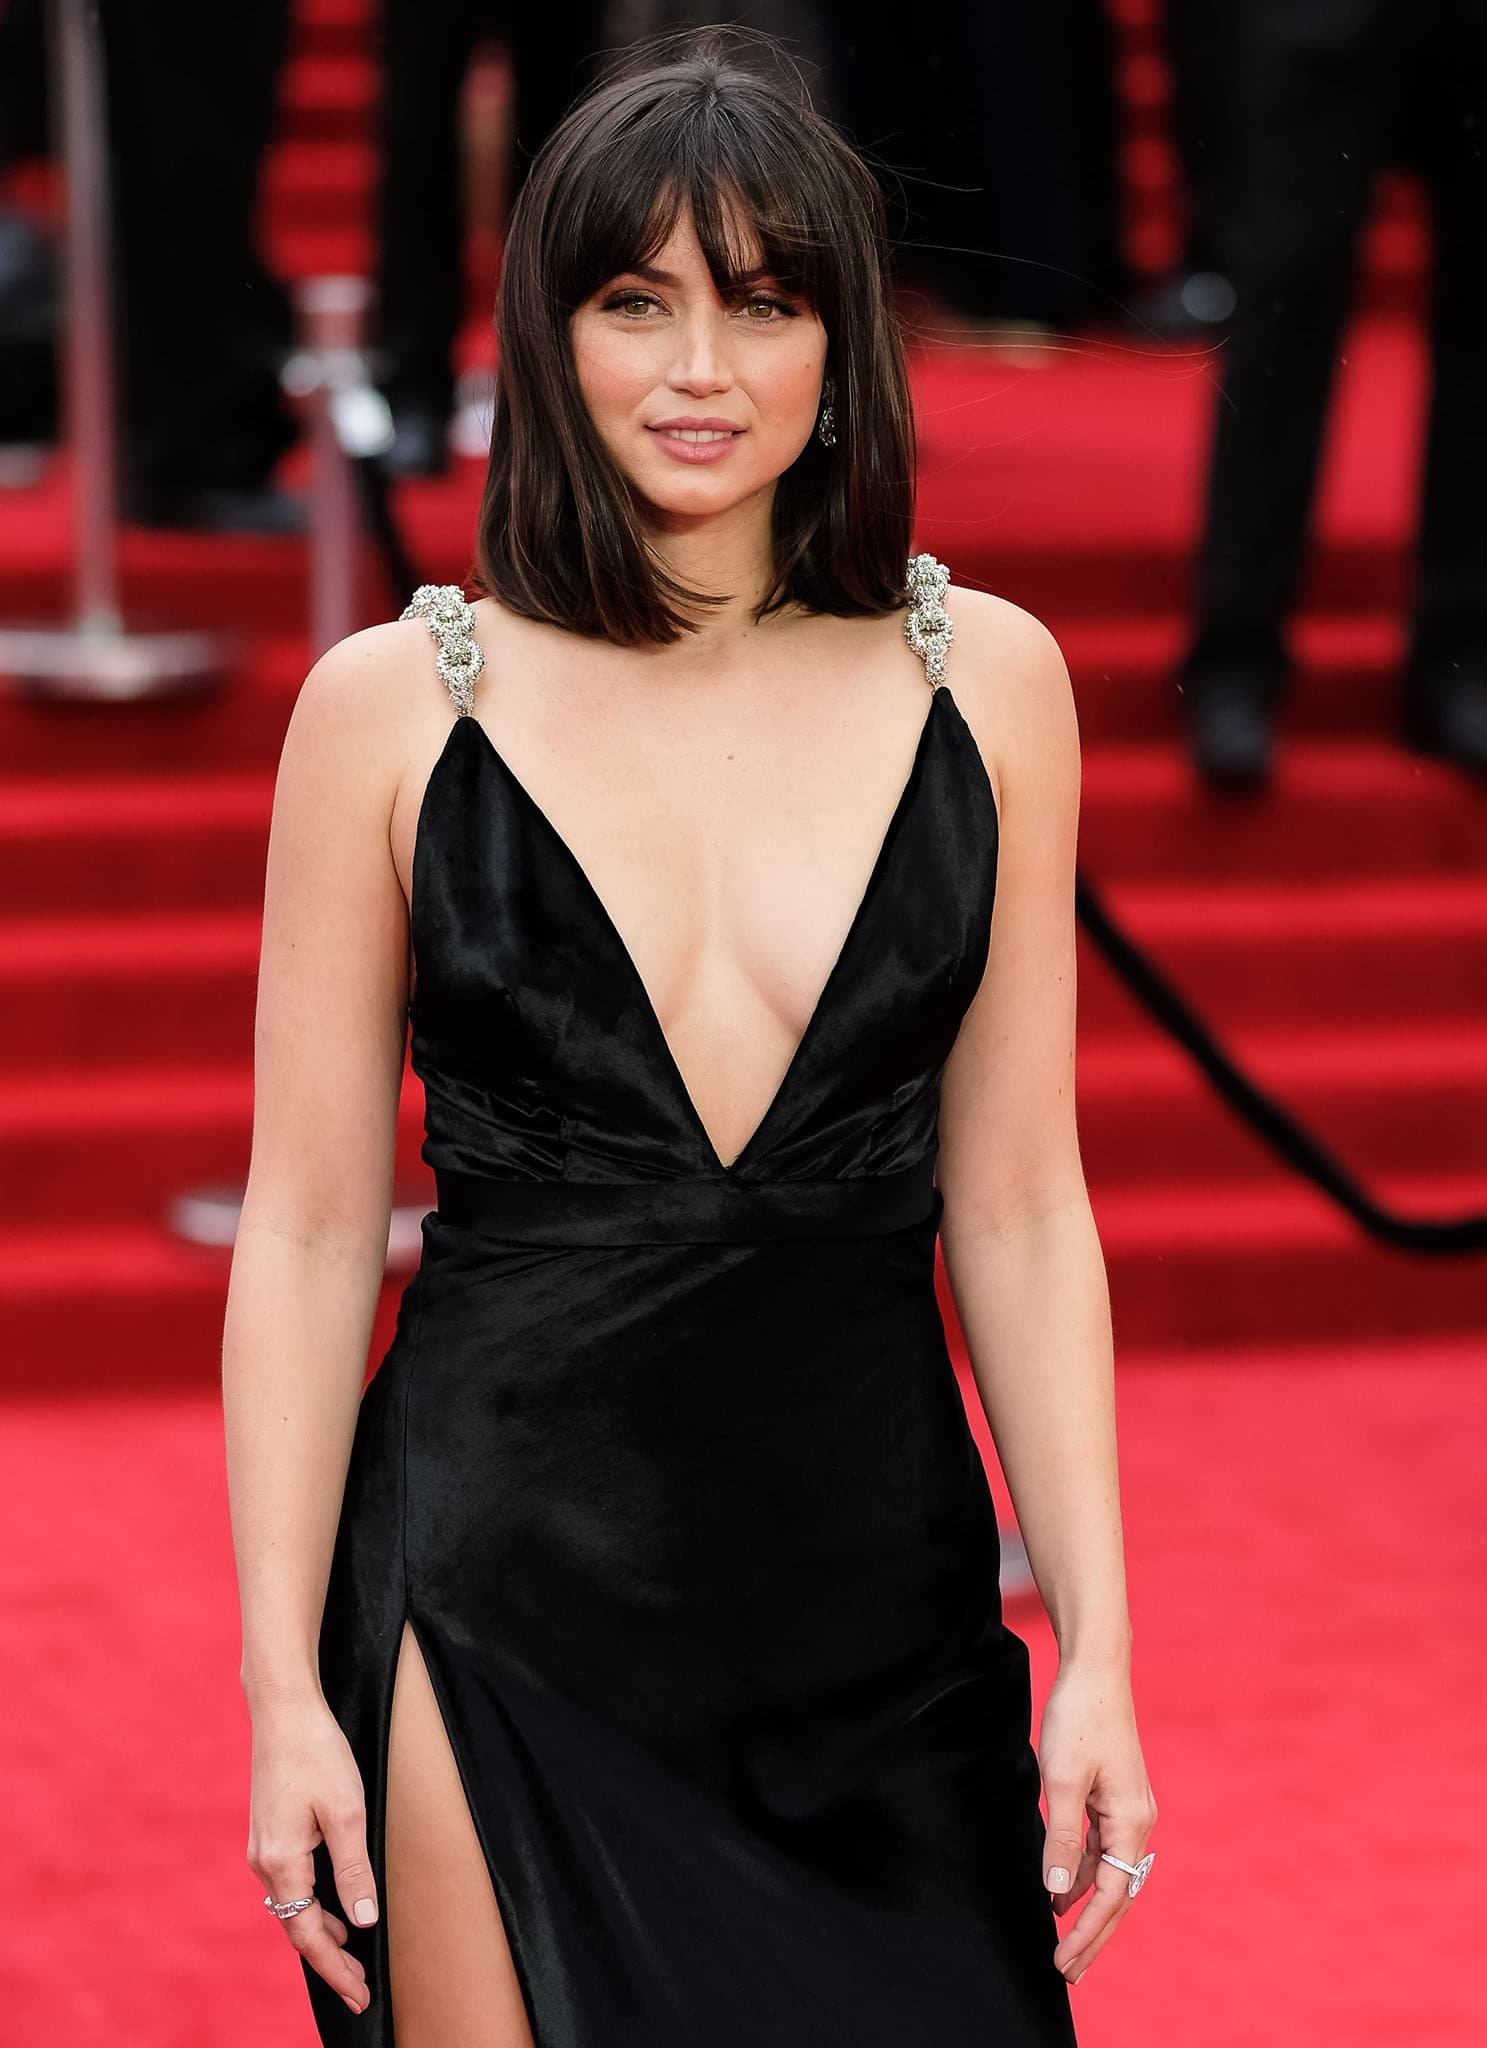 Ana de Armas styles her shoulder-length hair in a sleek bob with blunt fringe and wears minimal '80s makeup